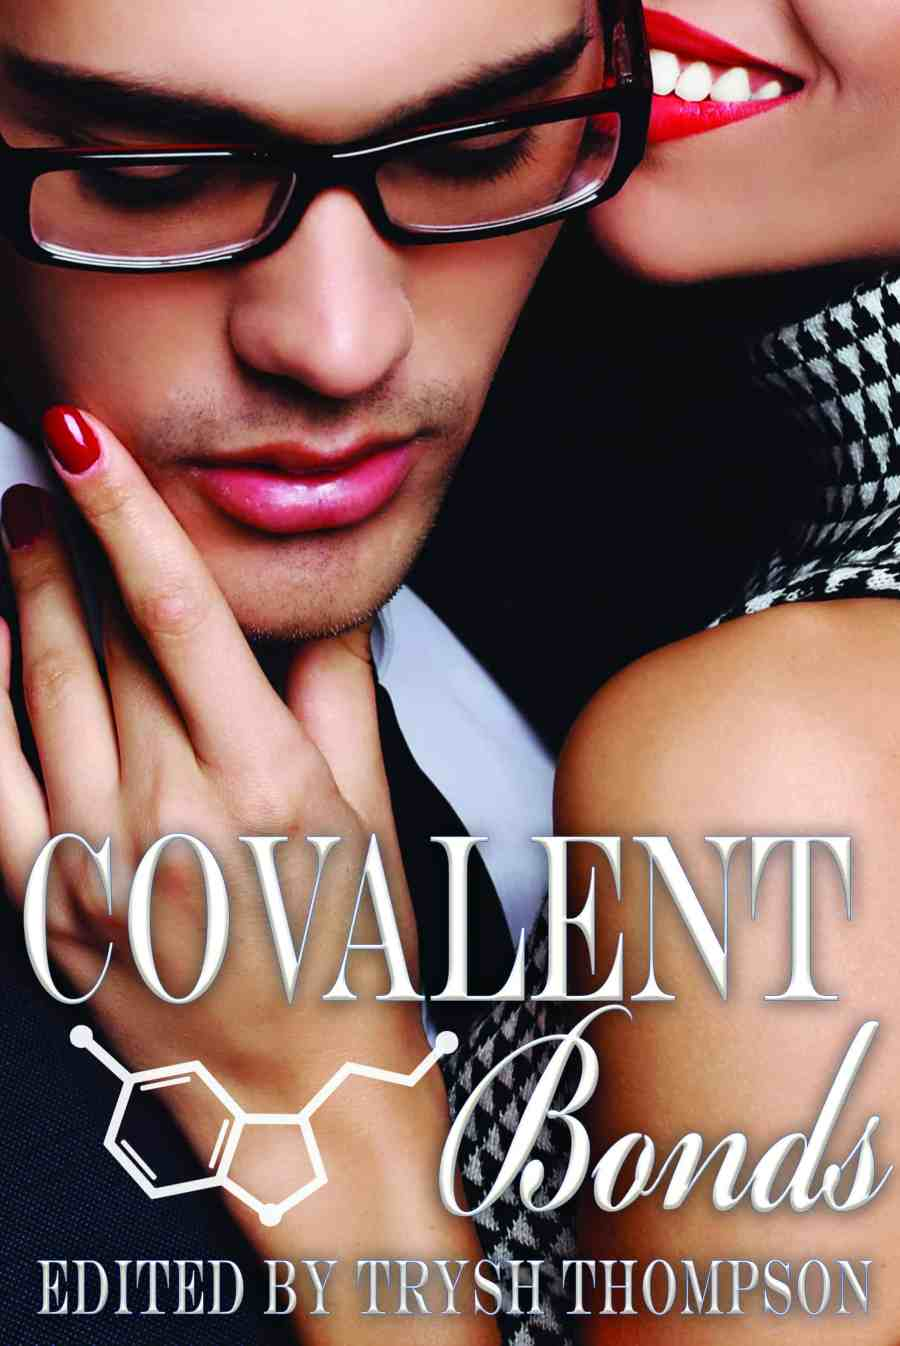 COVALENT BONDS cover, woman embracing handsome nerd in glasses